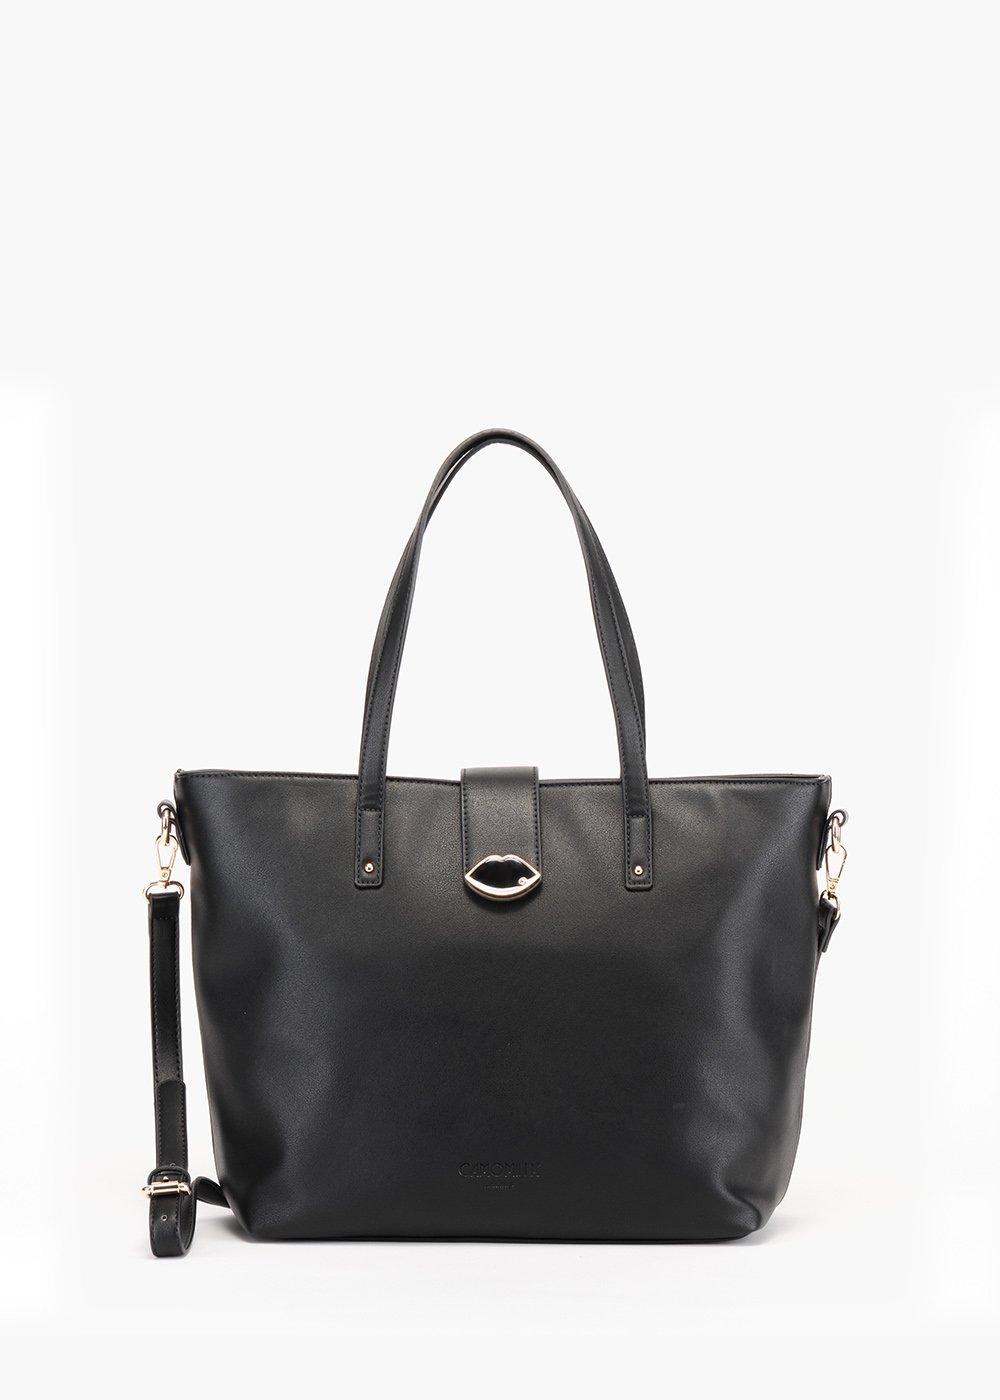 Shopping bag Banny in eco pelle con chiusura zip - Black - Donna